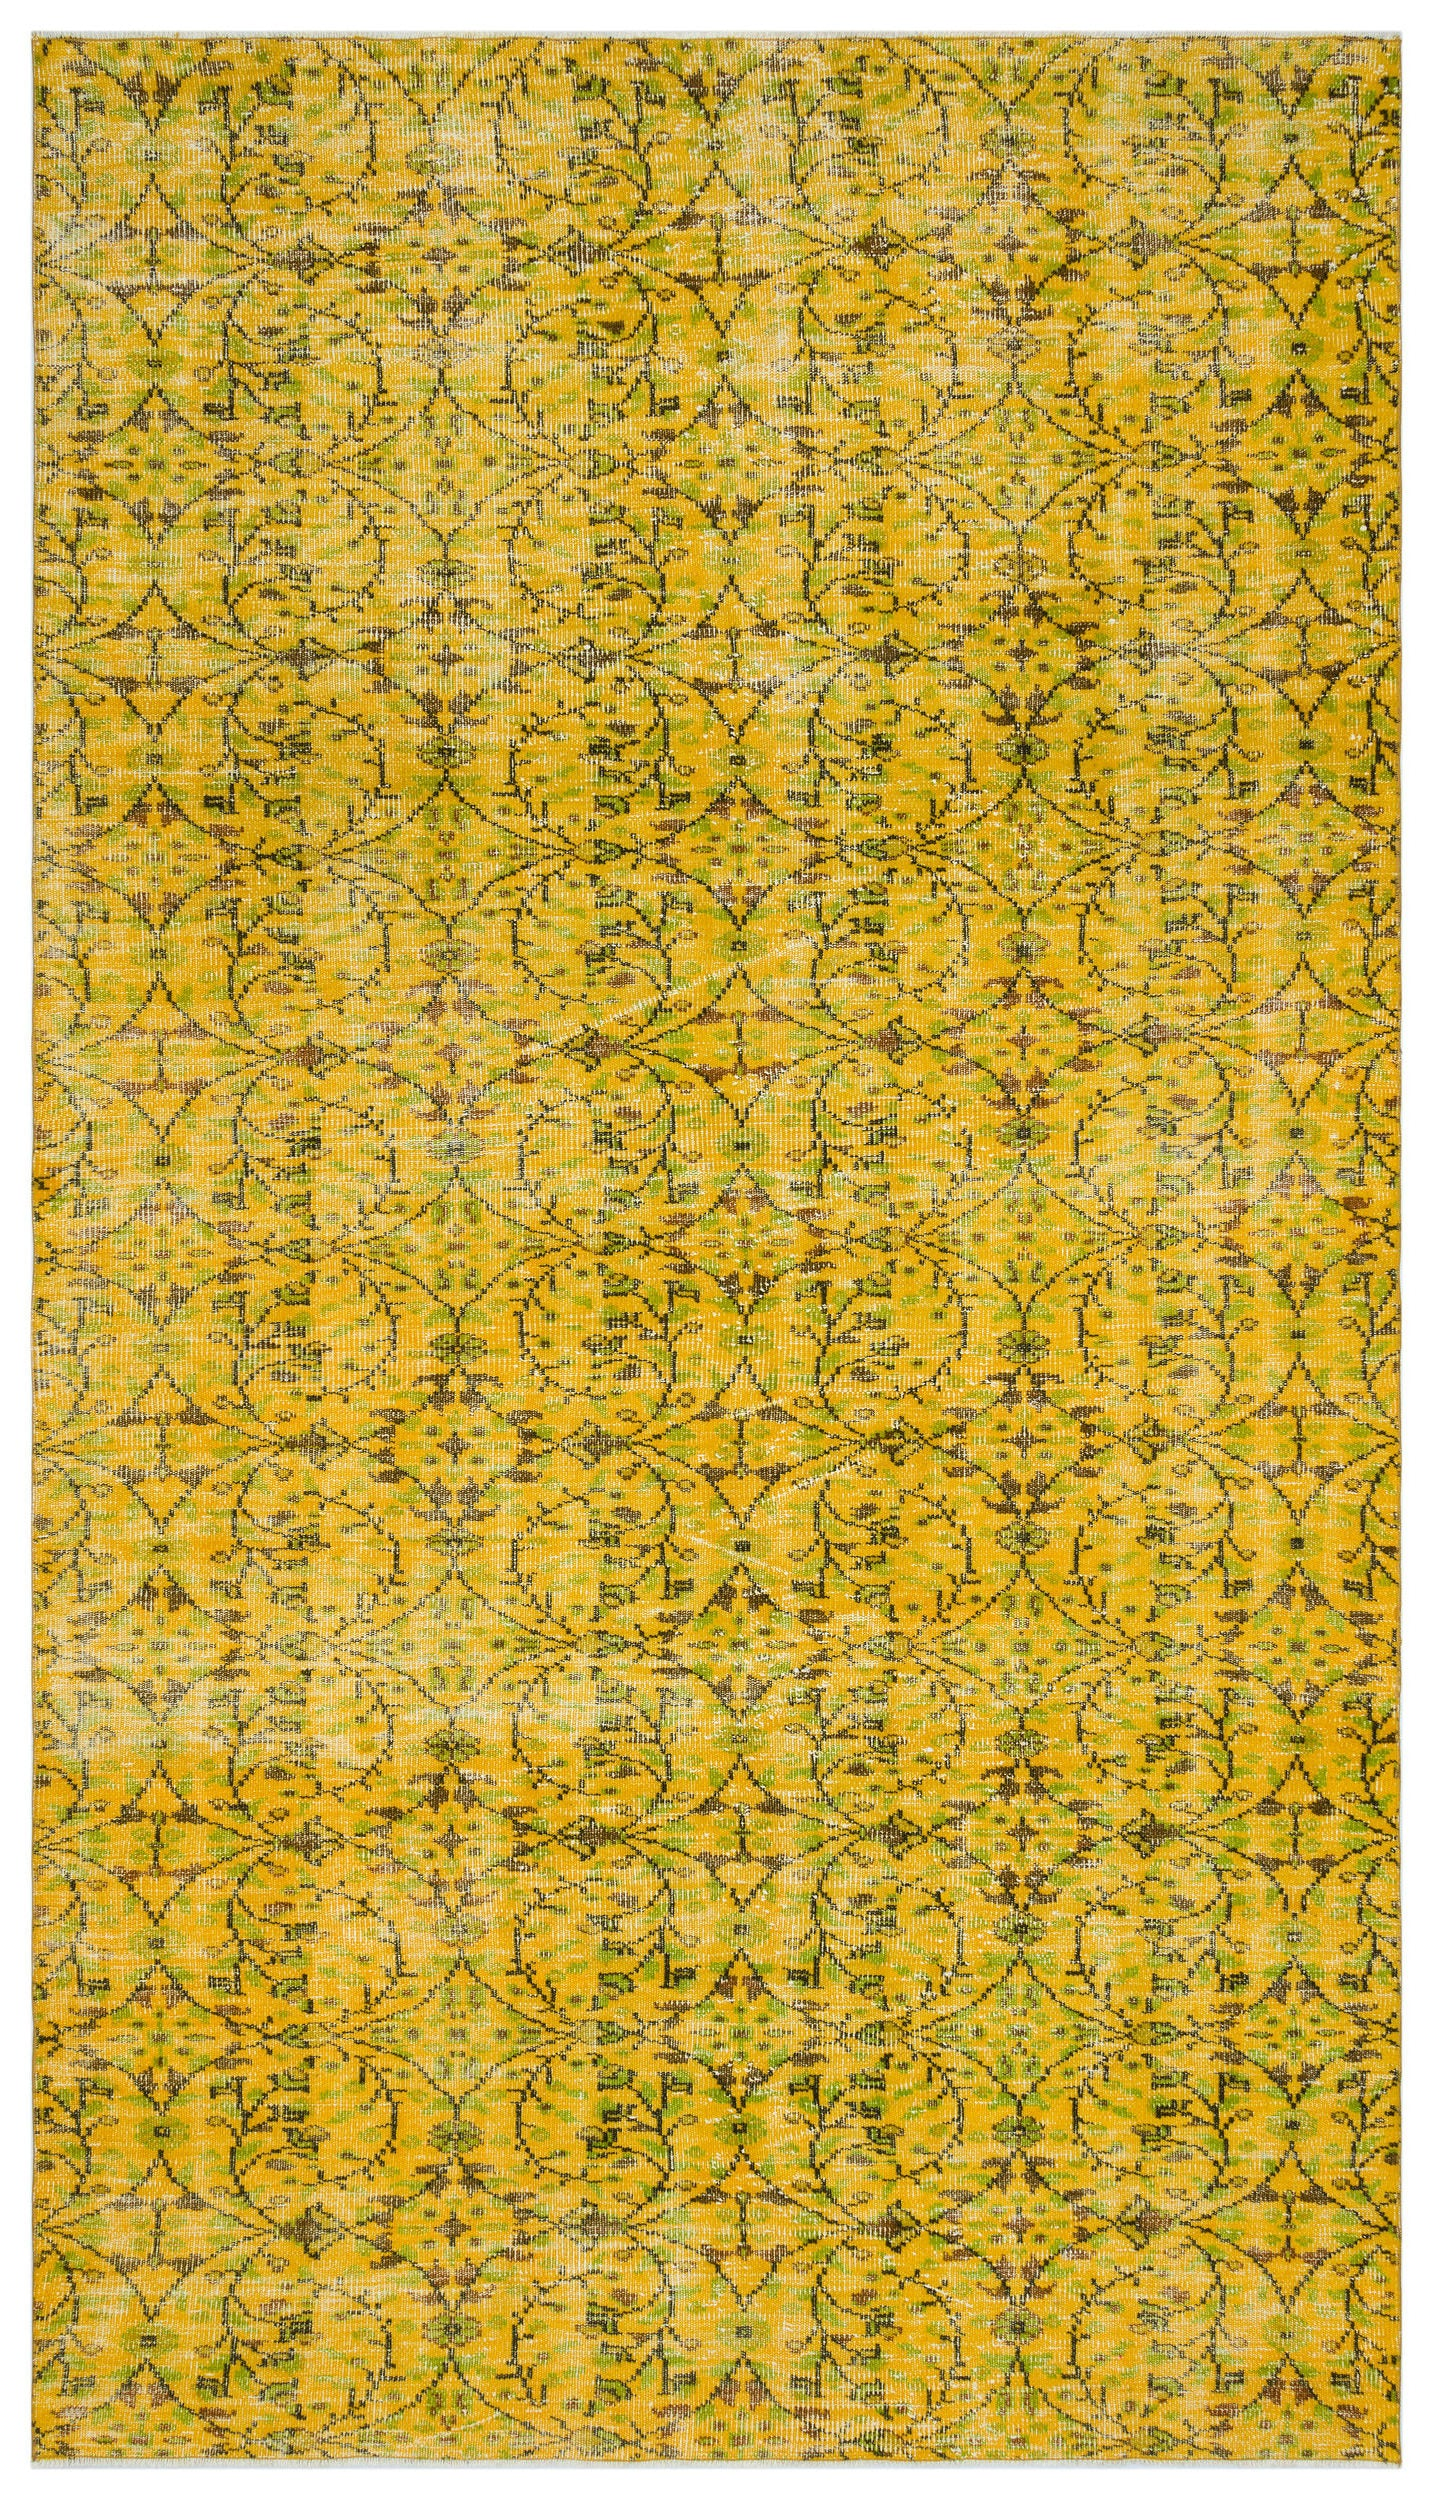 Yellow Over Dyed Vintage Rug 6'2'' x 10'12'' ft 188 x 335 cm